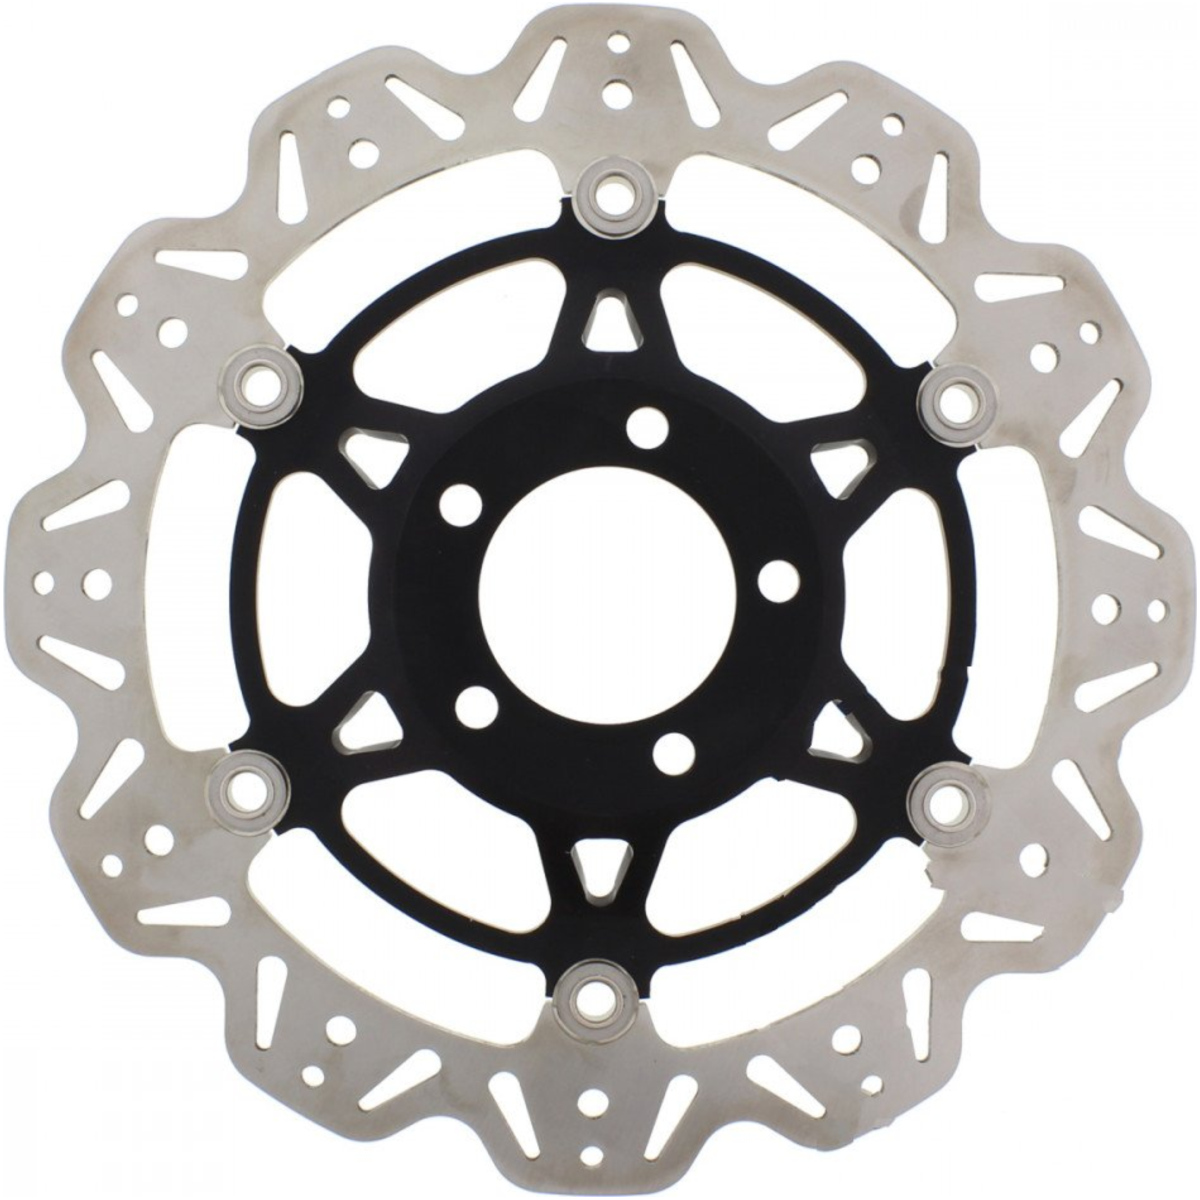 EBC Brake Disc Md6116d Front Motorcycle Parts Motorcycle Brakes & Suspension Parts